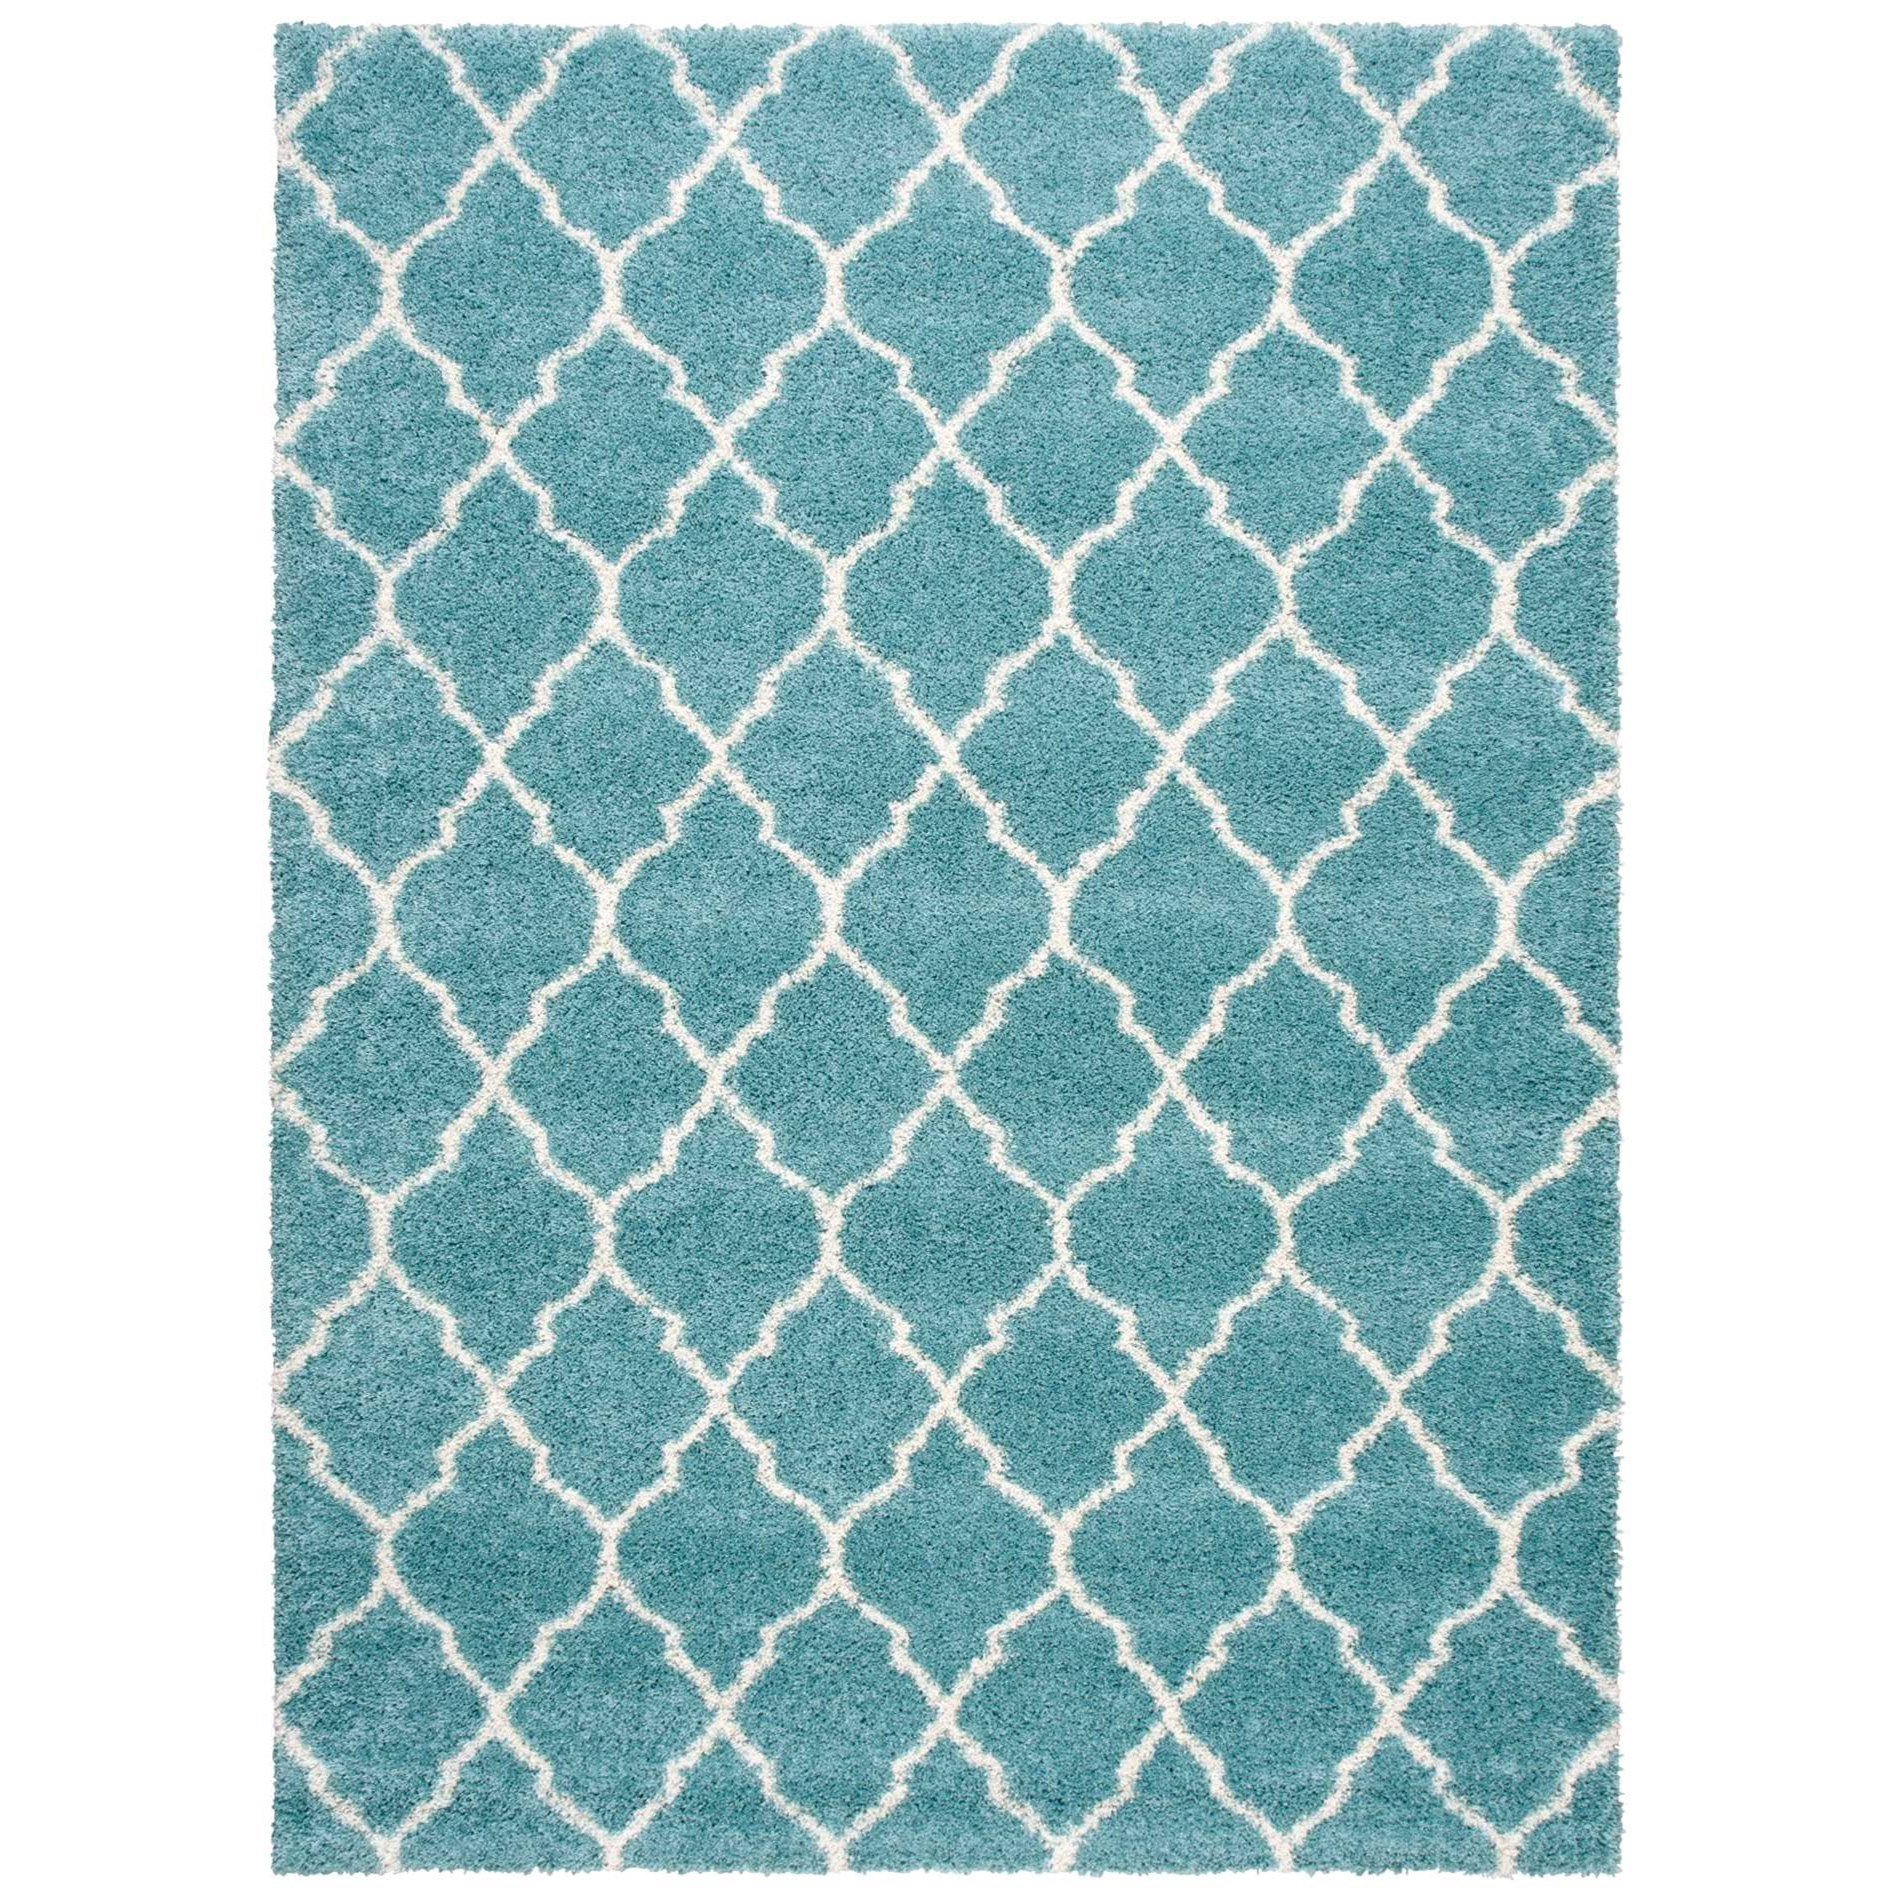 "Amore 7'10"" x 10'10"" Aqua Rectangle Rug by Nourison at Home Collections Furniture"